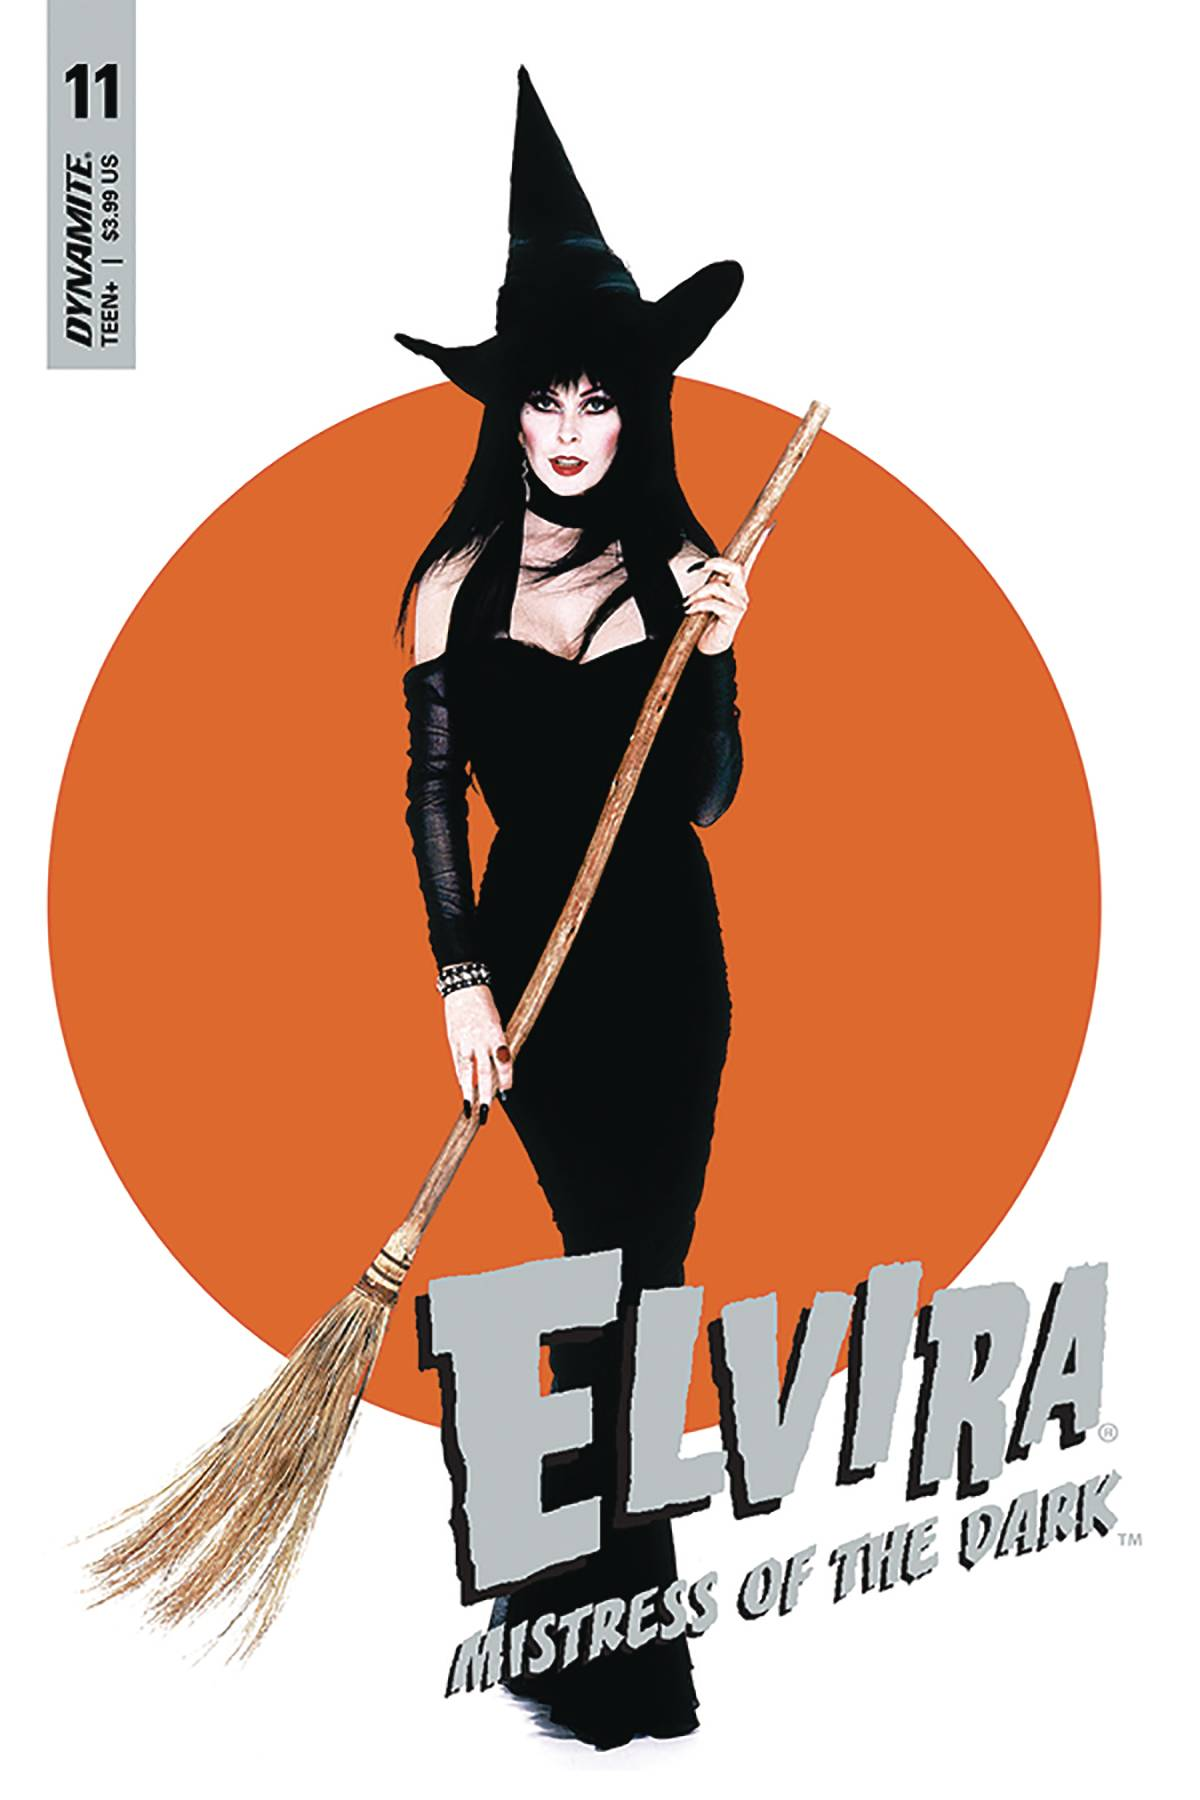 ELVIRA MISTRESS OF DARK #11 CVR D PHOTO